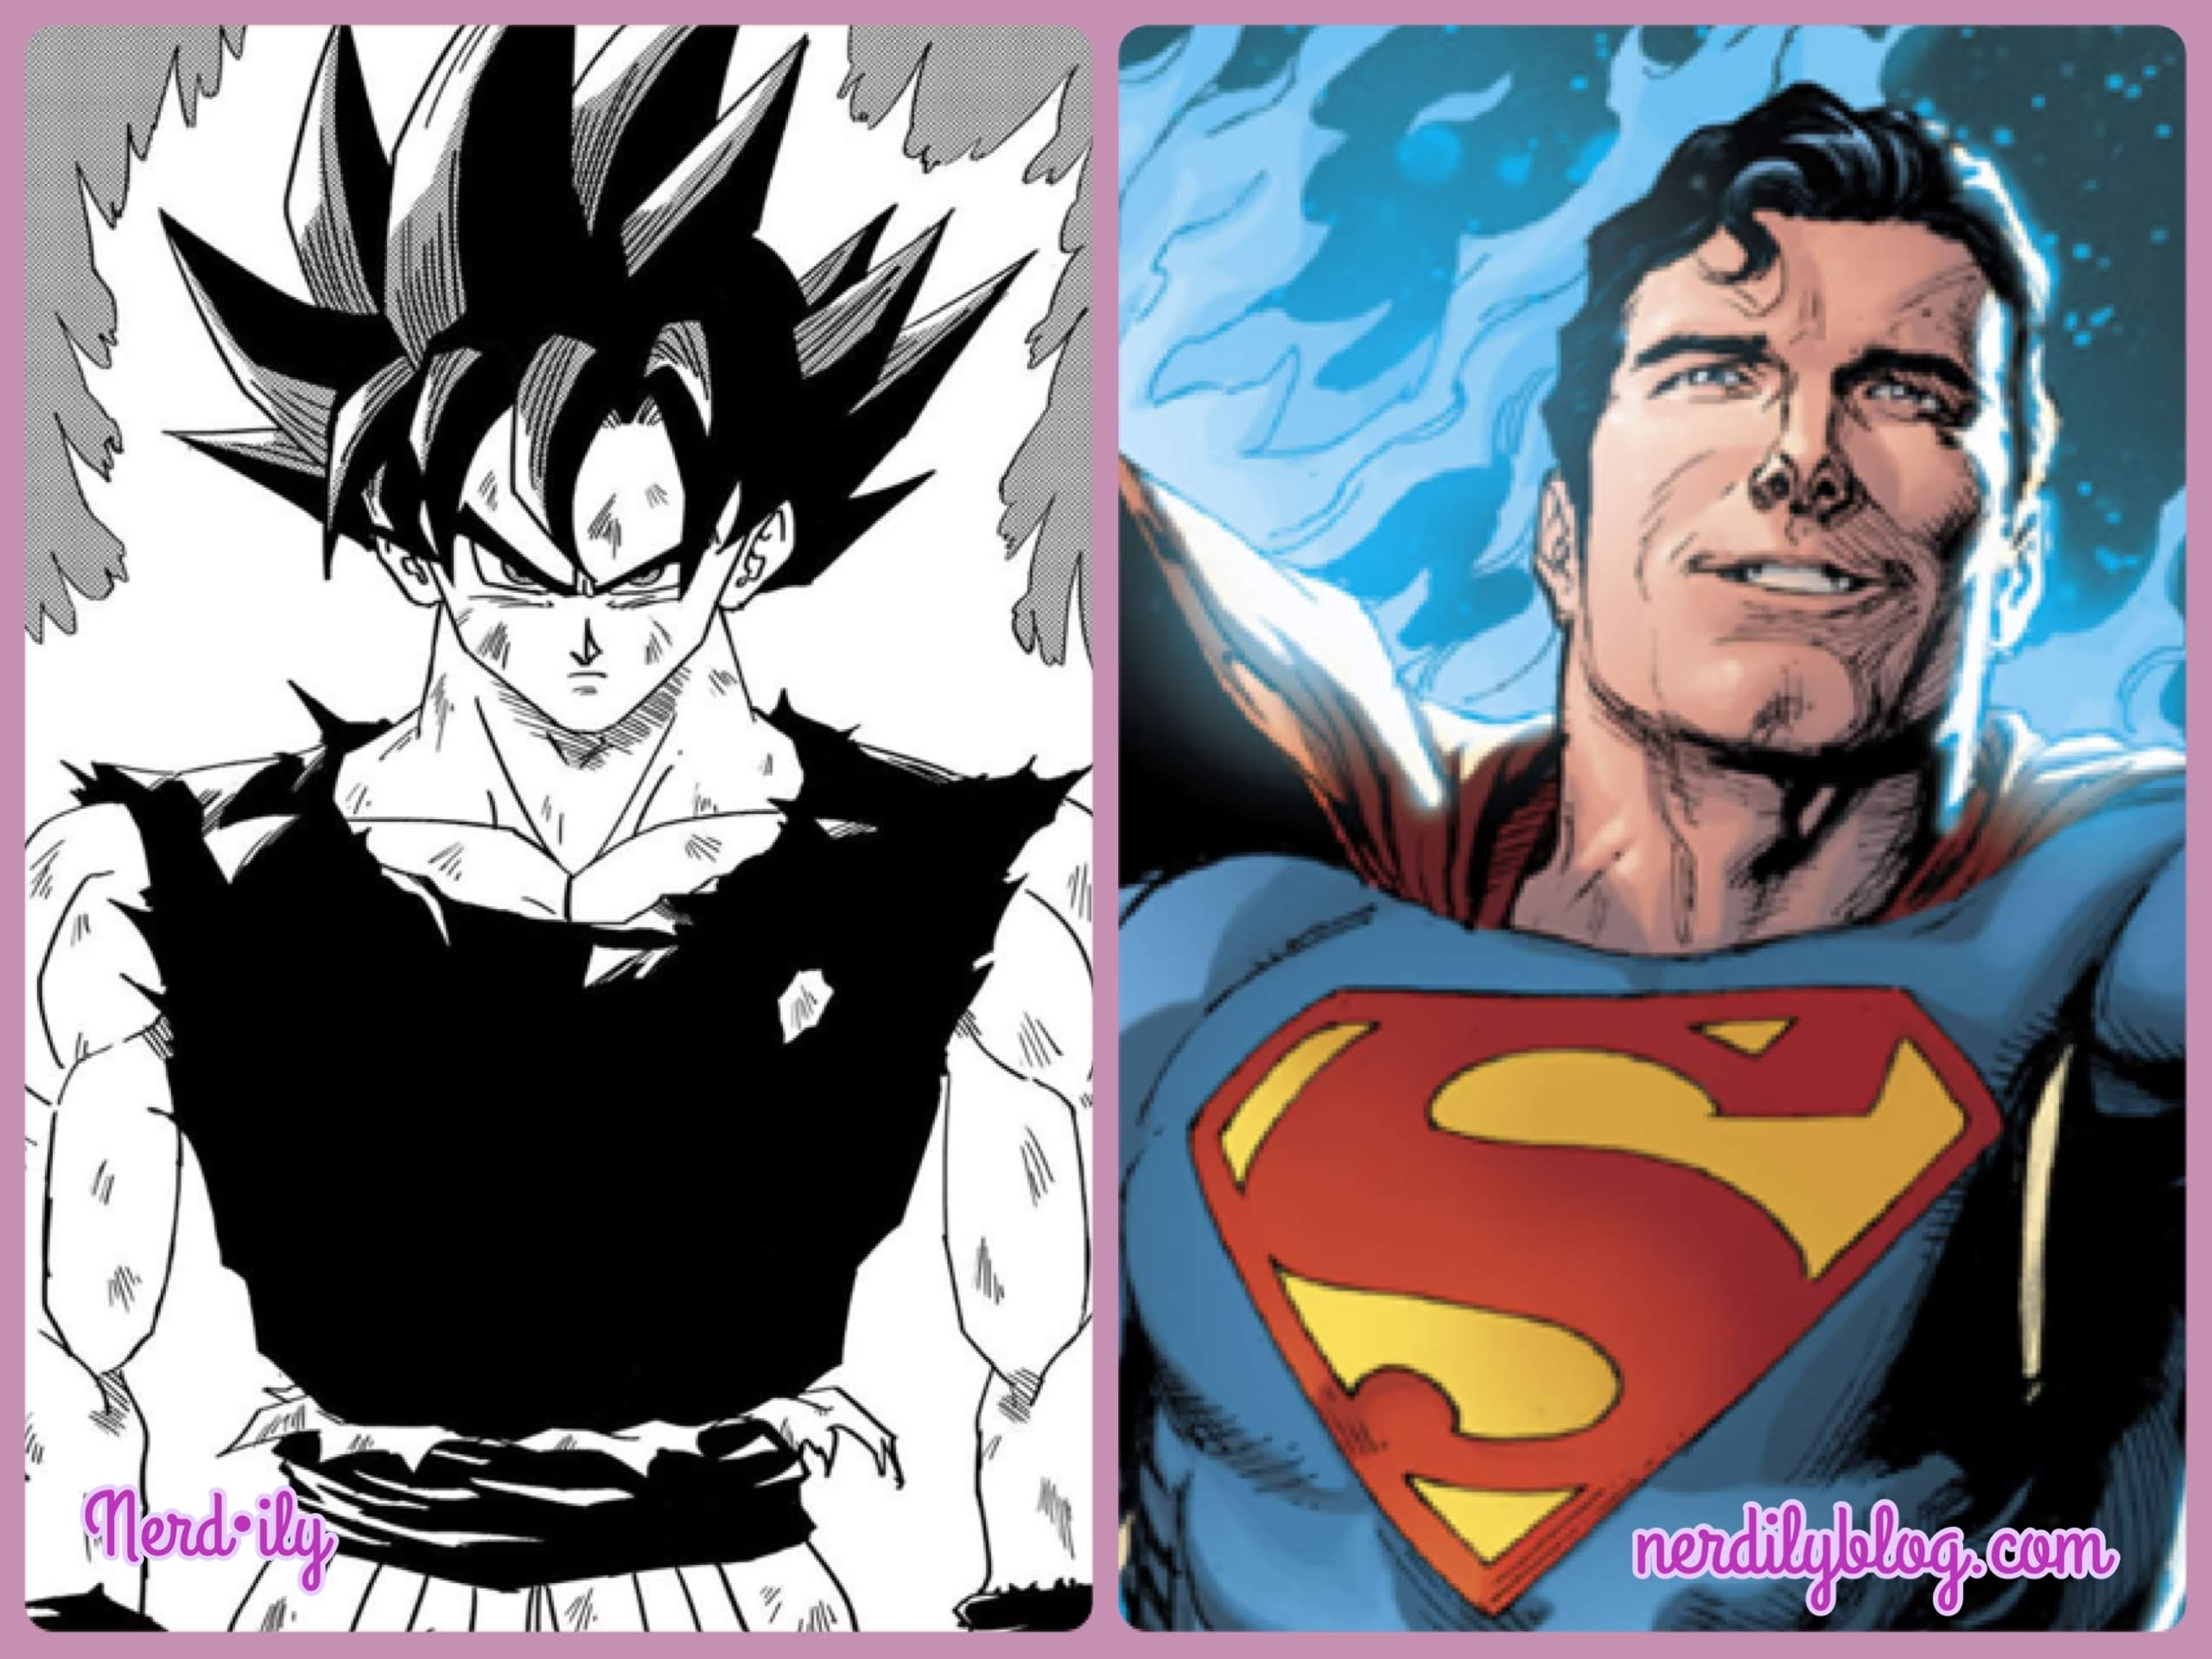 Goku from Dragonball Z next to Superman.